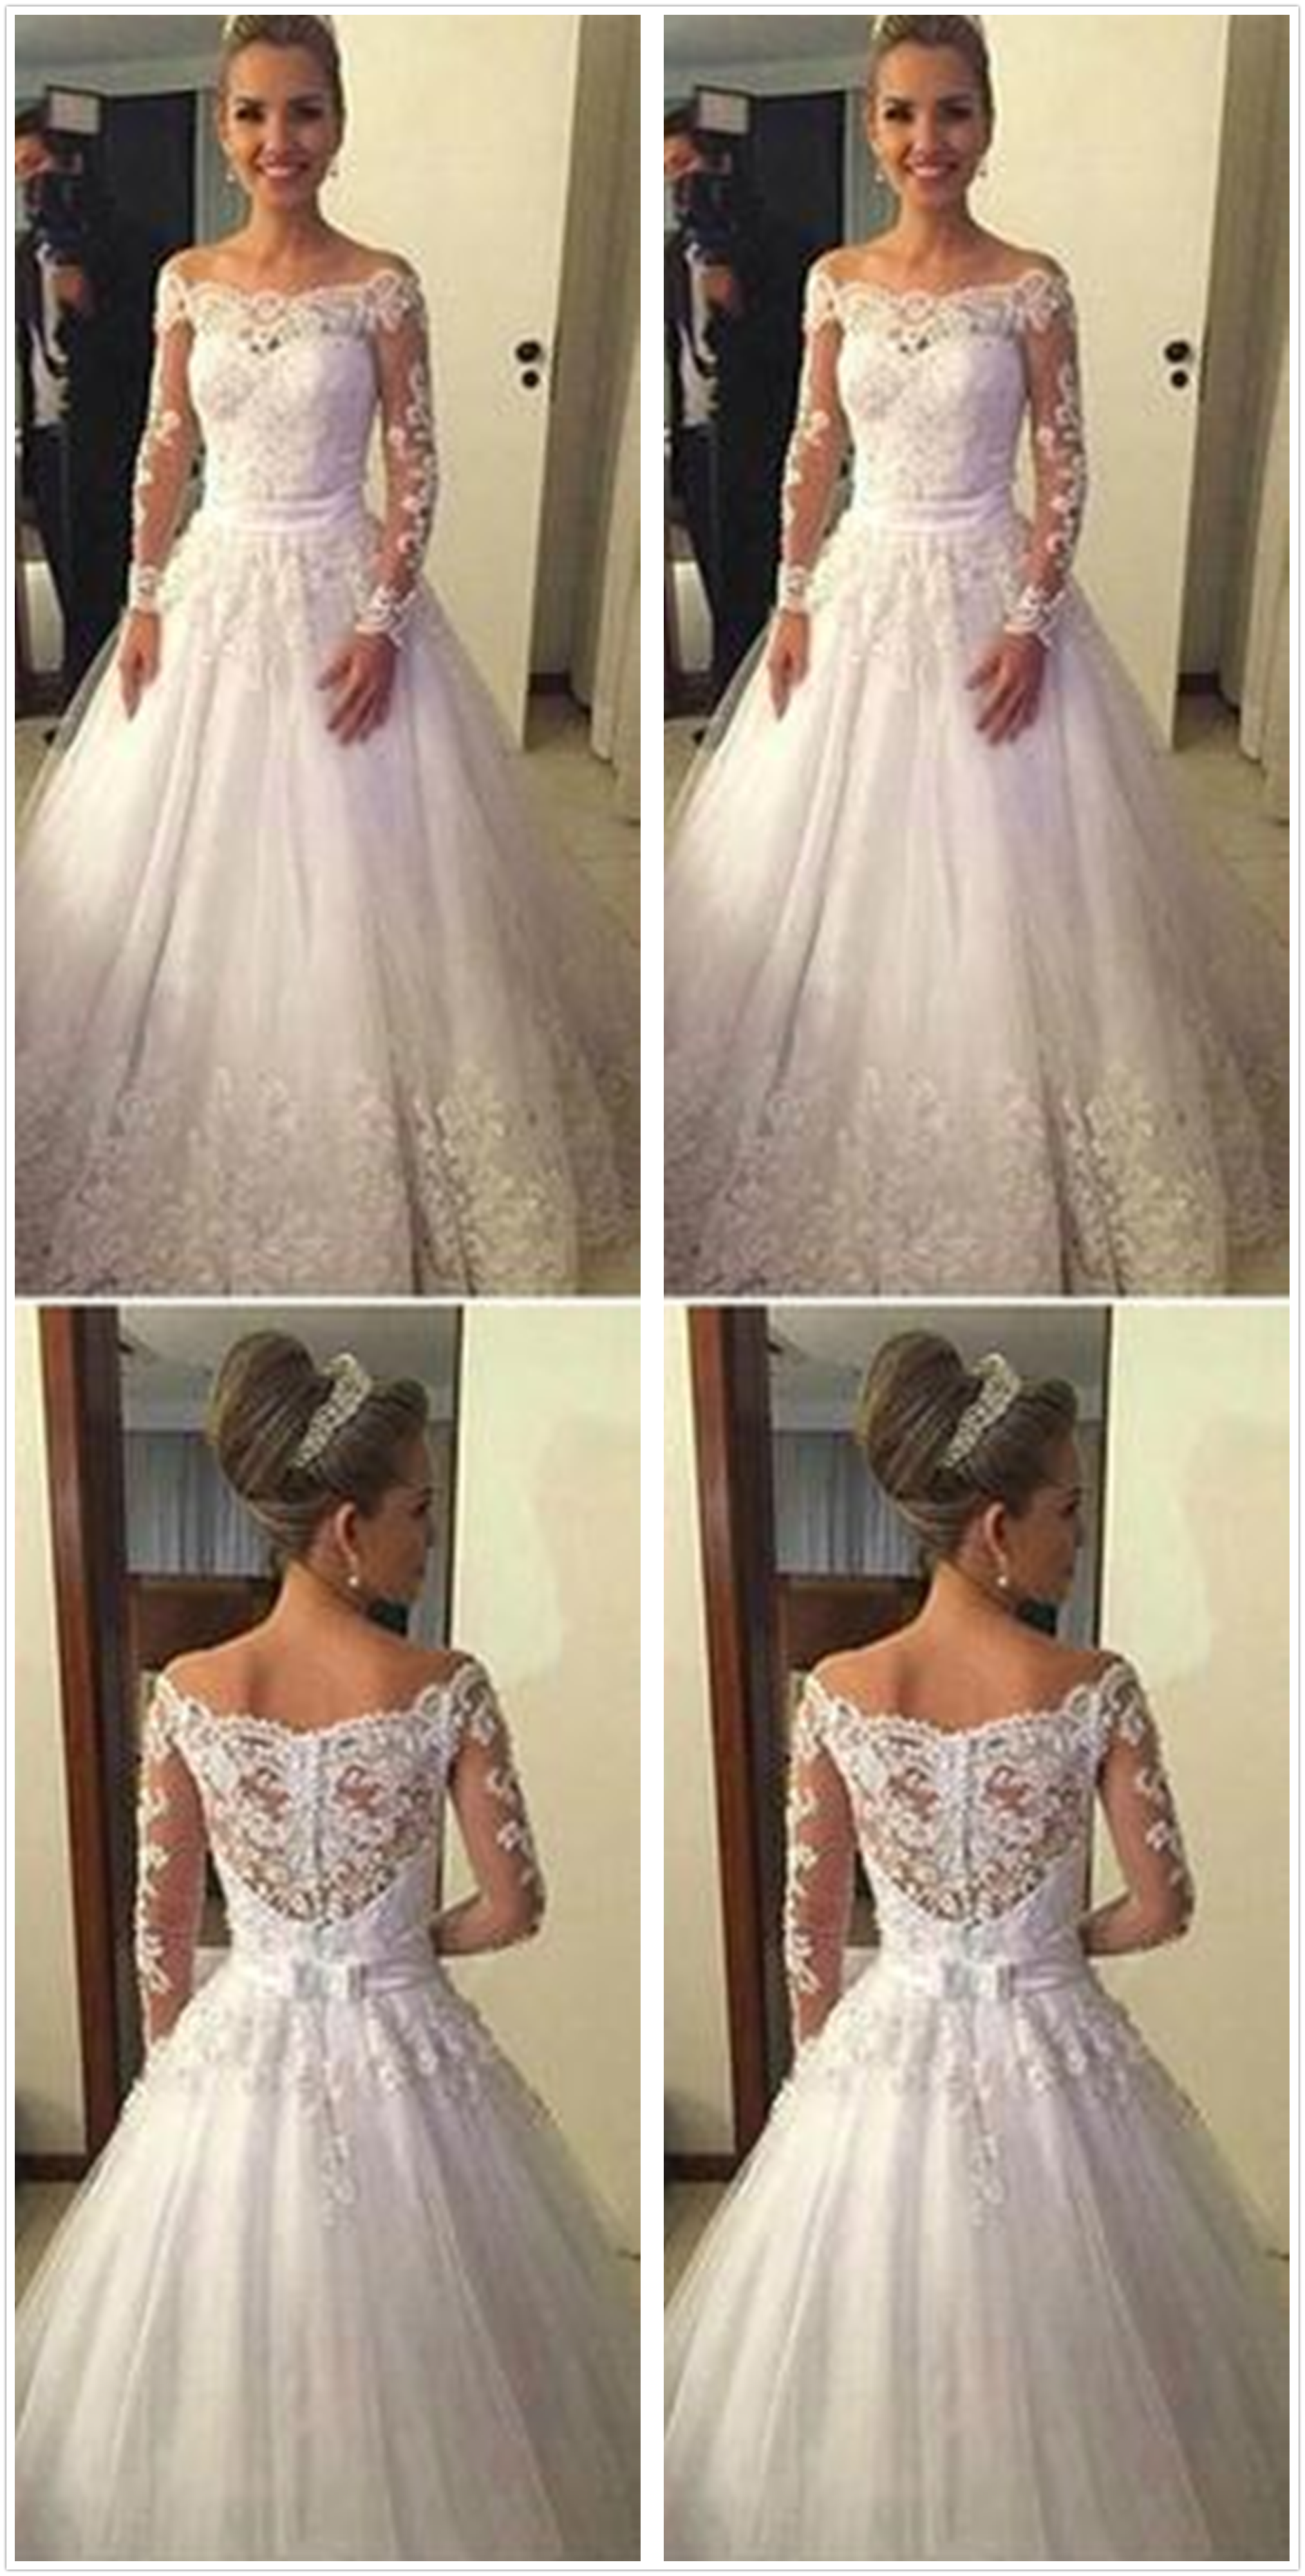 4b5d40387072f Cheap Vantage Off Shoulder Long Sleeve White Lace Tulle Wedding Party  Dresses